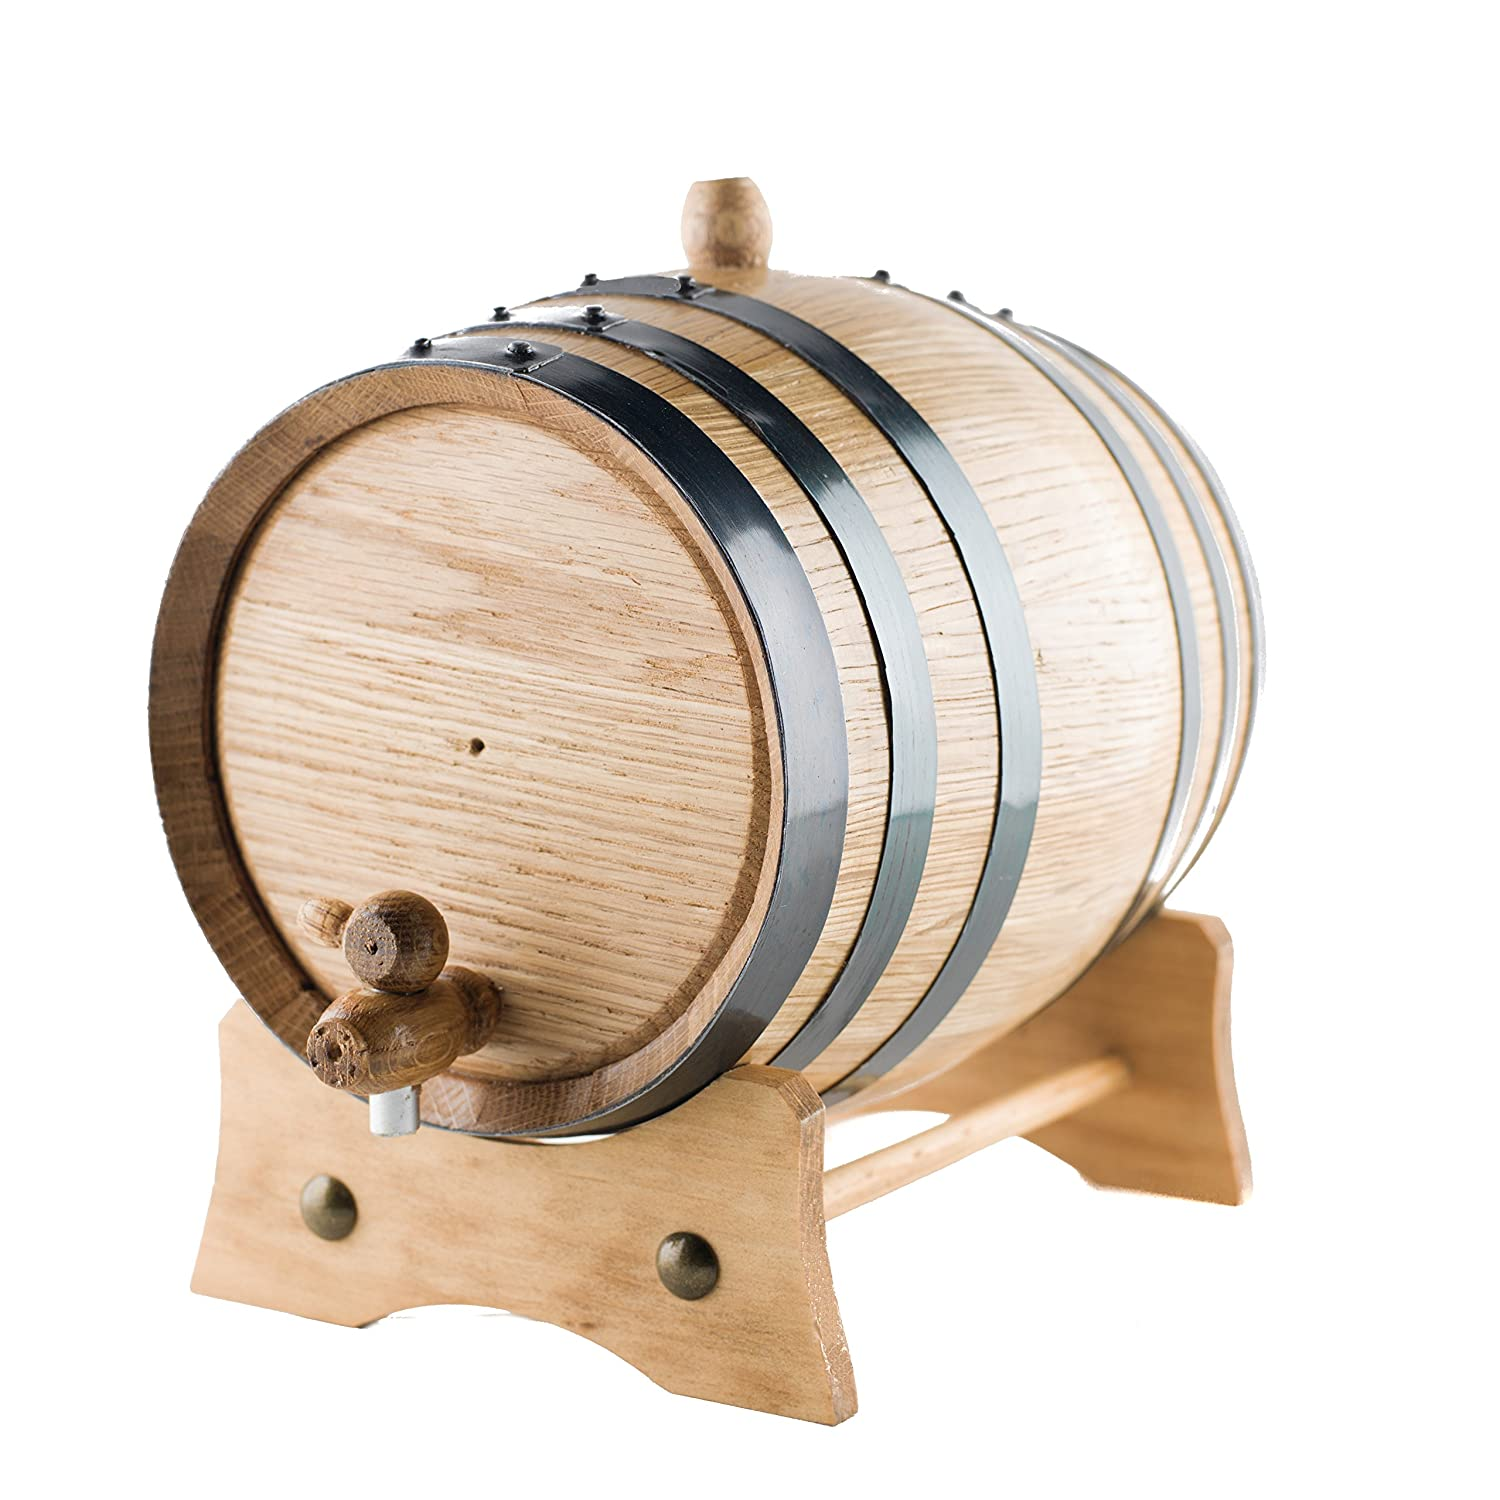 3 Liter American Oak Aging Barrel | Handcrafted using American White Oak | Age your own Whiskey, Beer, Wine, Bourbon, Rum, Tequila & More. Sofia's Findings